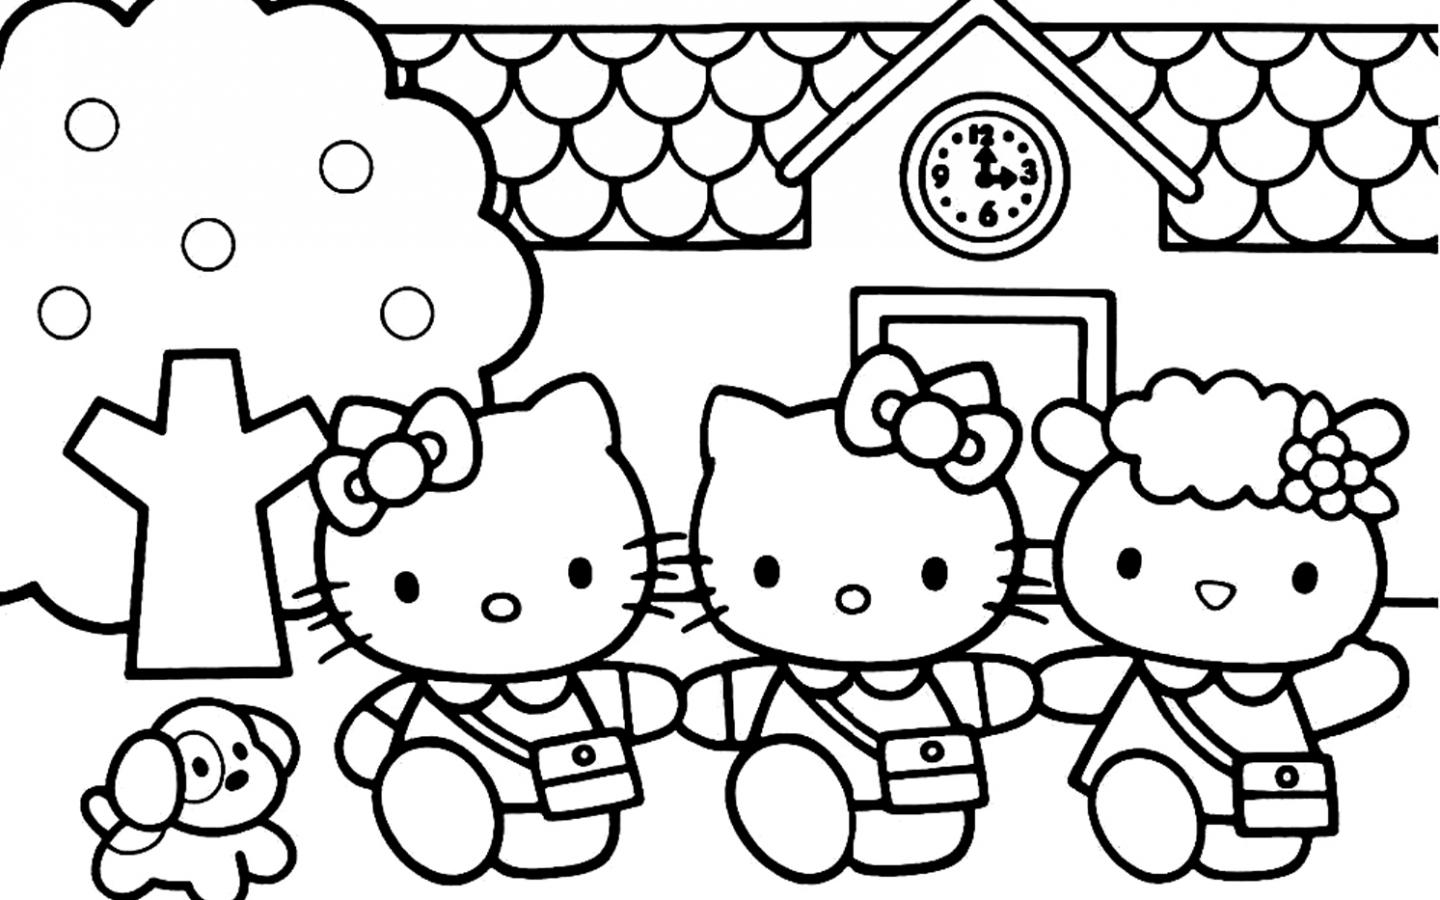 Hello Kitty Coloring Pages 07 Of 15 - Mimmy, Kitty And Fifi - HD Wallpapers